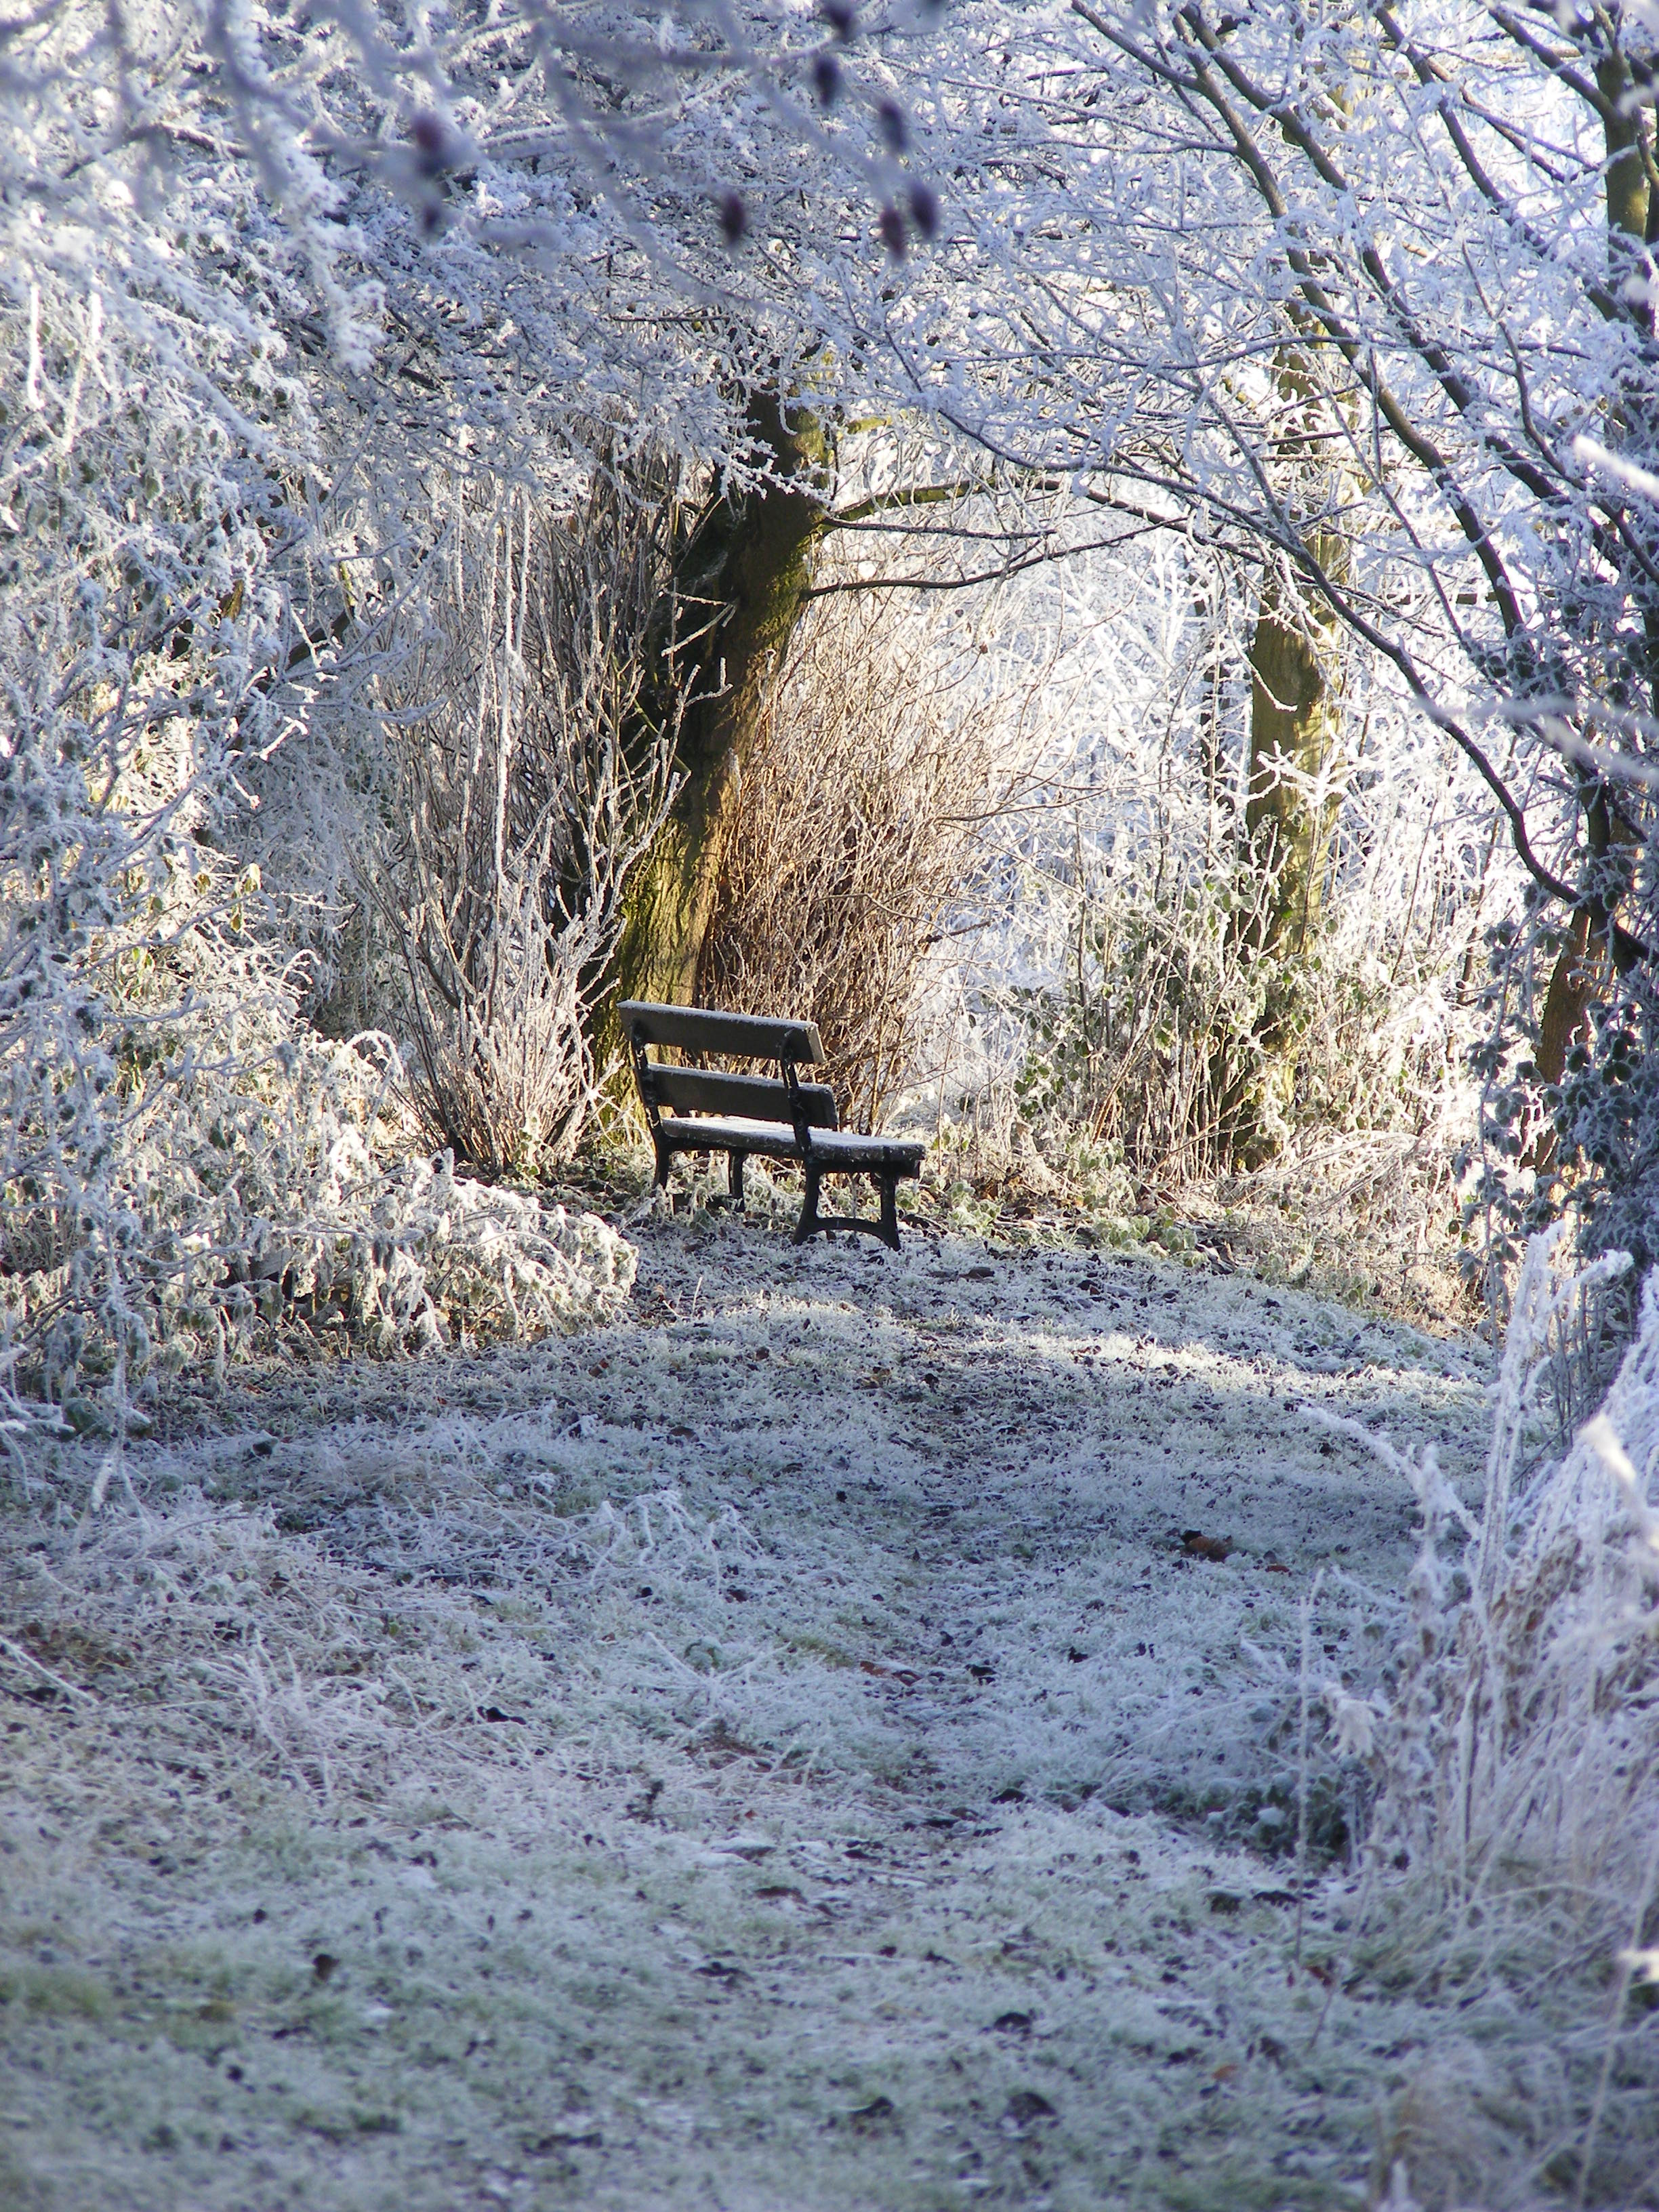 Winter walks at Nettle Hill